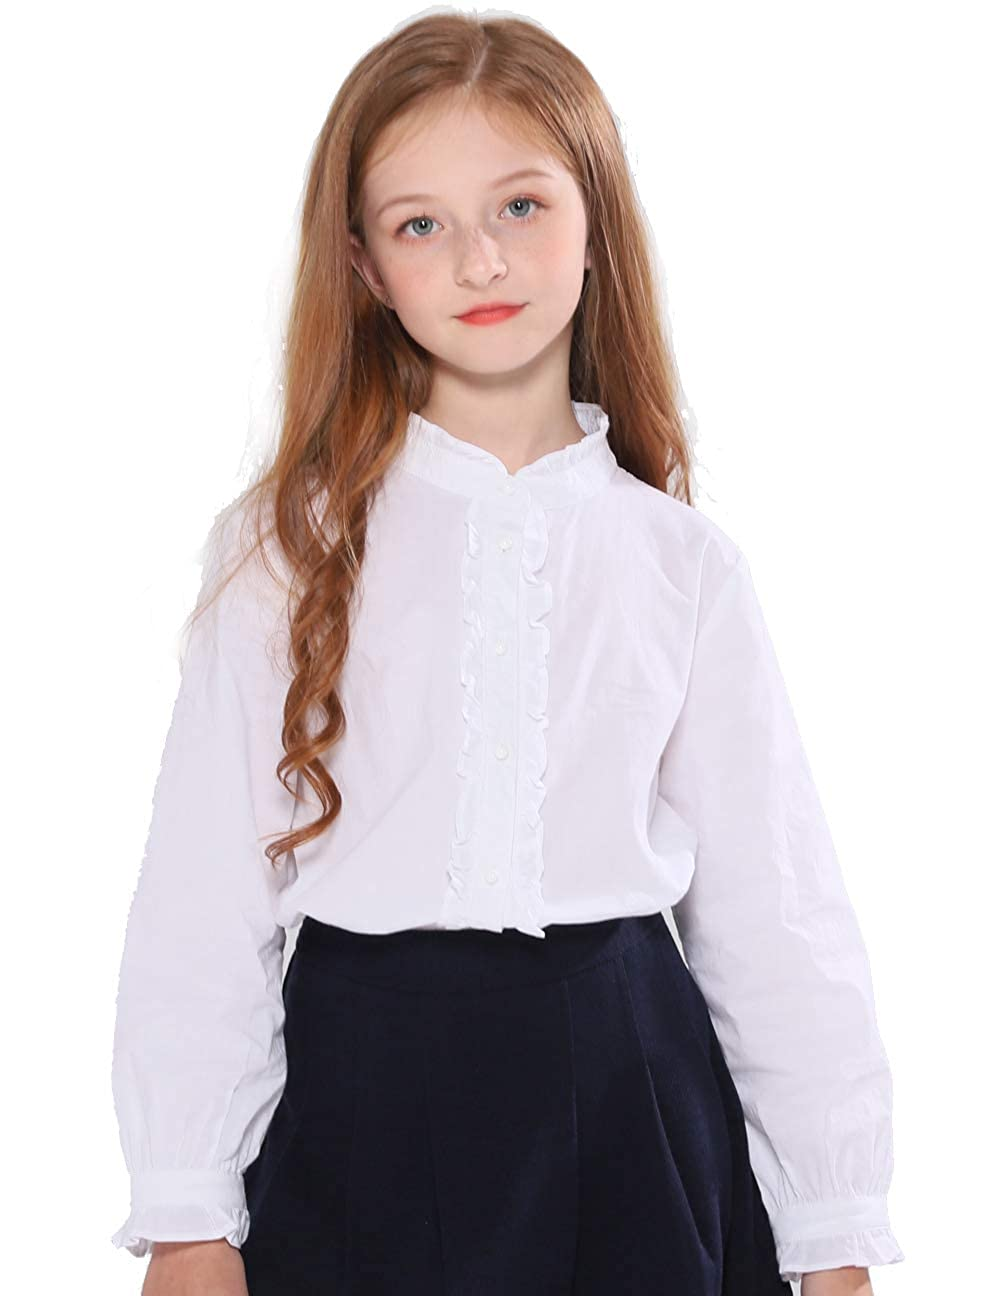 Vintage Style Children's Clothing: Girls, Boys, Baby, Toddler SOLOCOTE Girls White Blouse Ruffle Long Sleeve Button Down Shirts Princess Cotton Loose Soft Tops Spring and Summer 3-14Y $22.99 AT vintagedancer.com